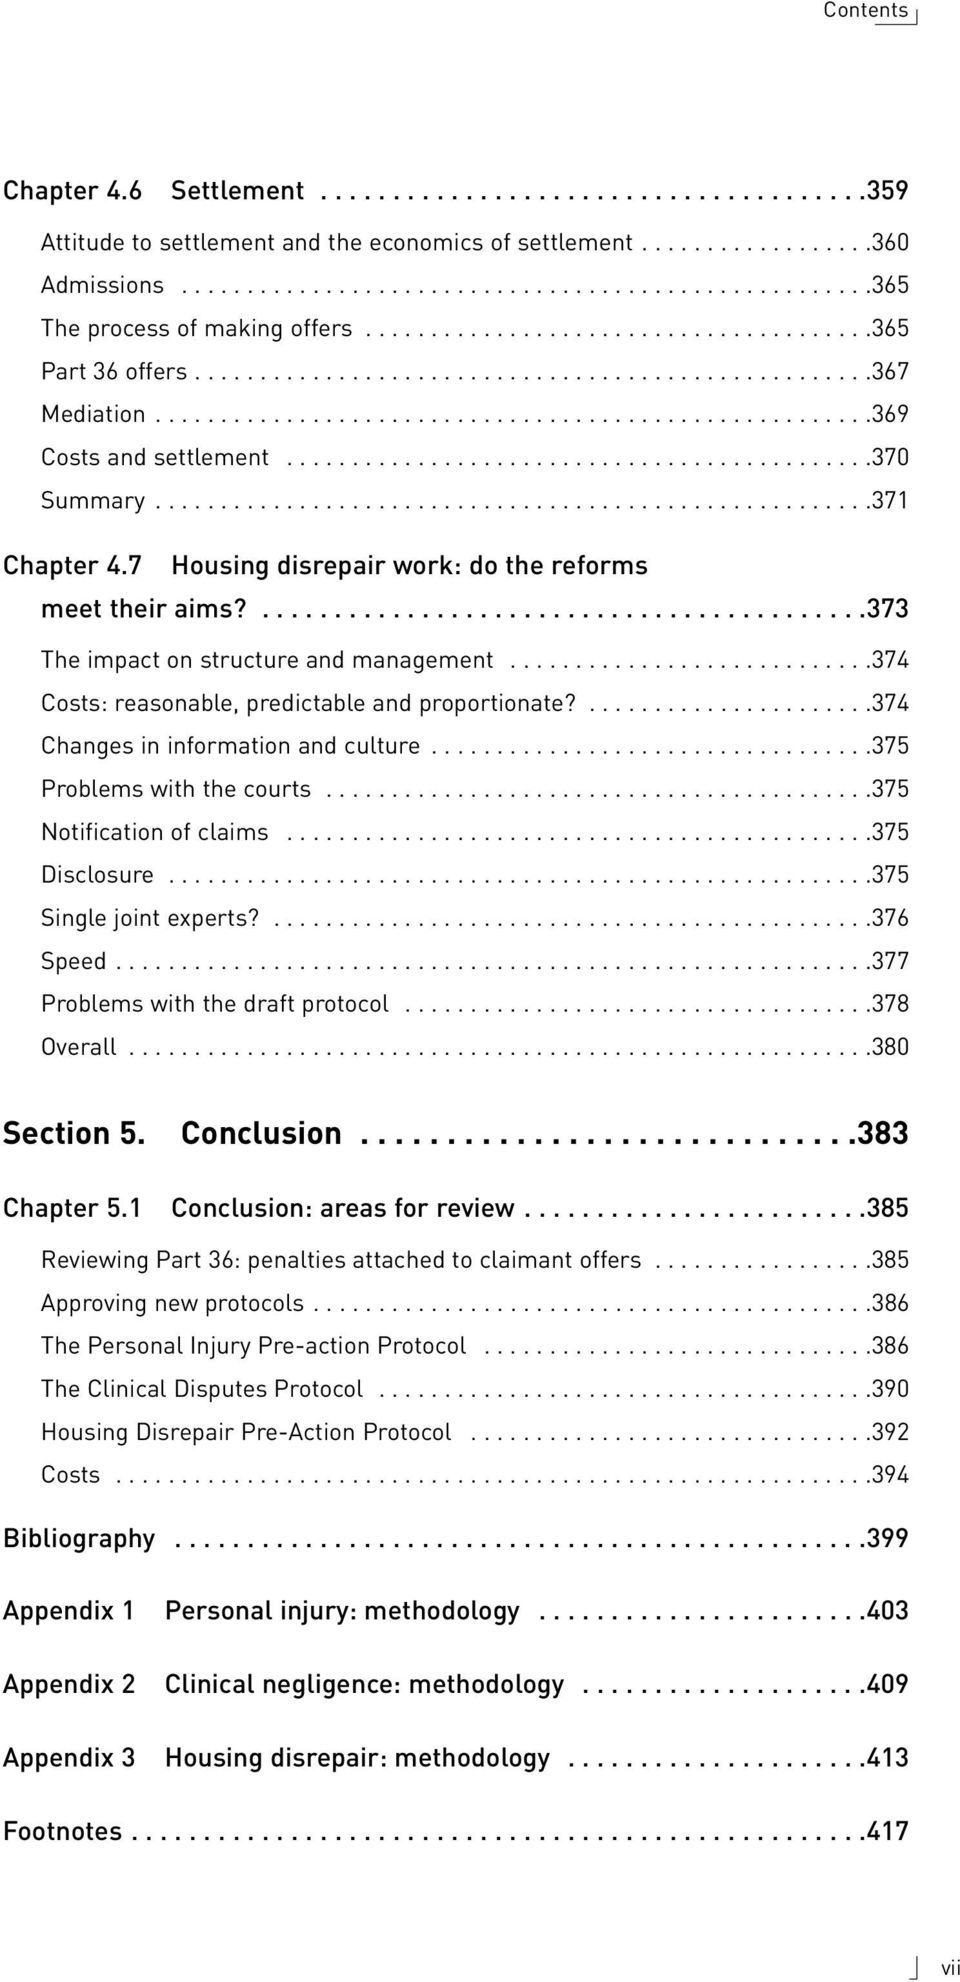 ............................................370 Summary.......................................................371 Chapter 4.7 Housing disrepair work: do the reforms meet their aims?